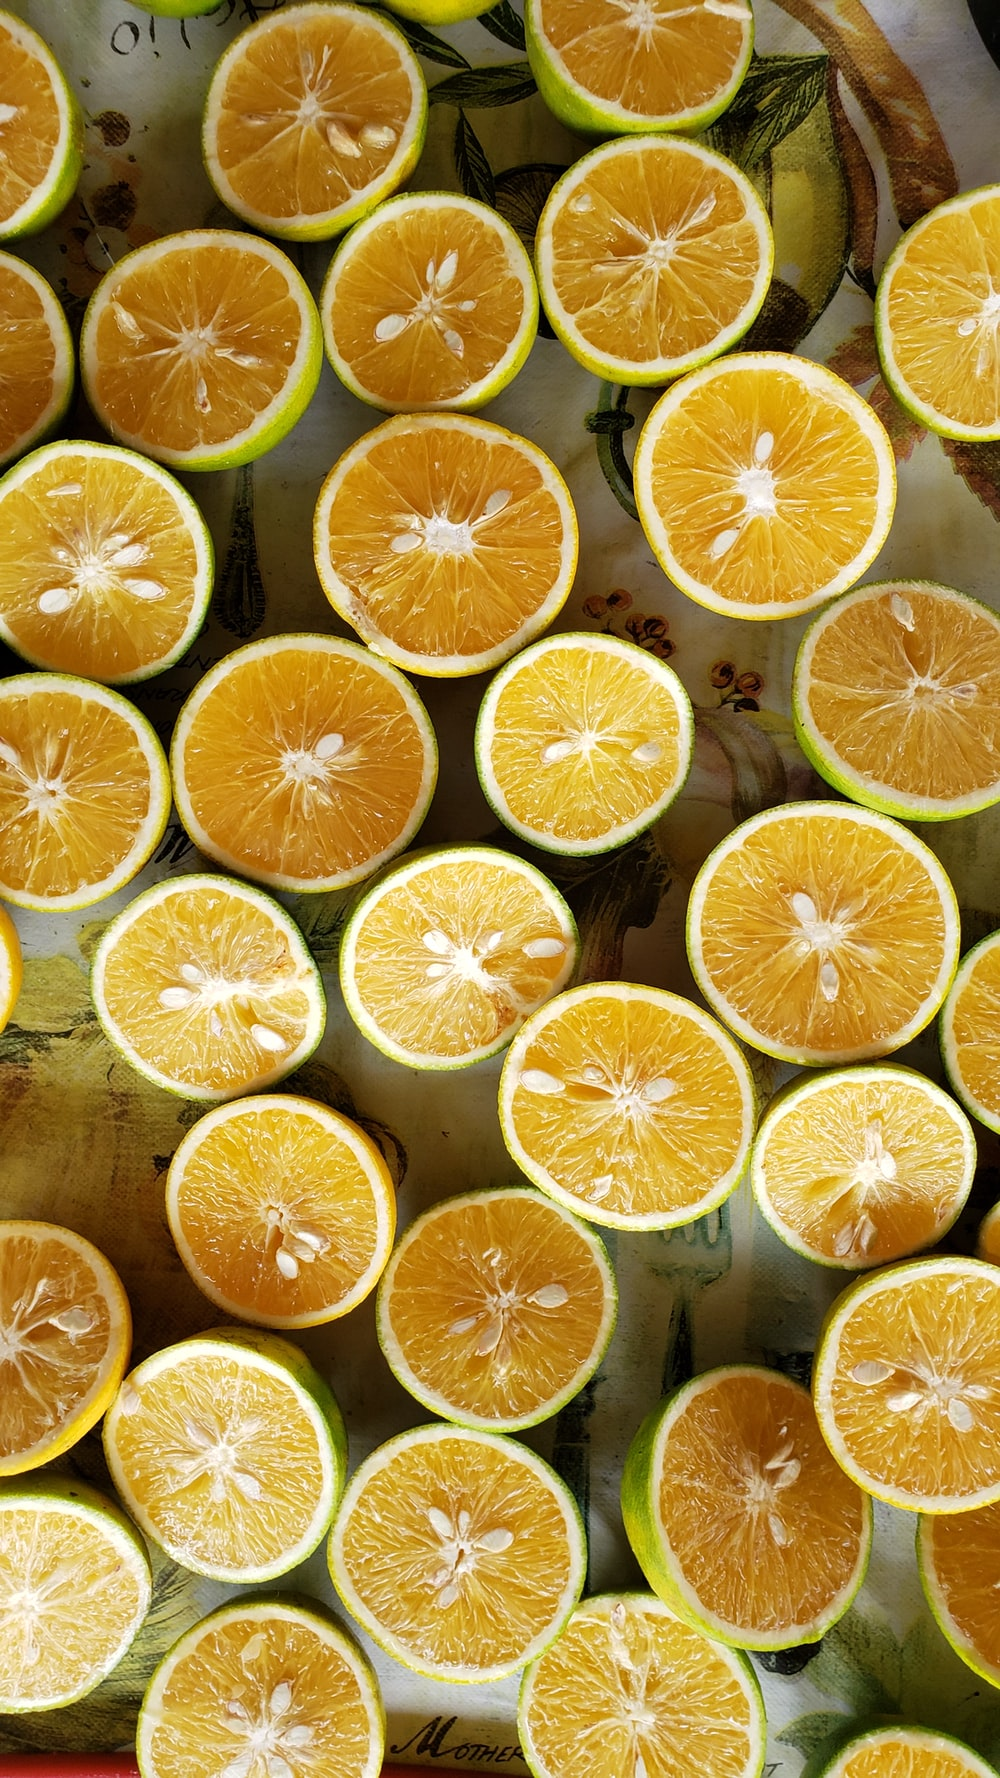 sliced yellow lime fruits